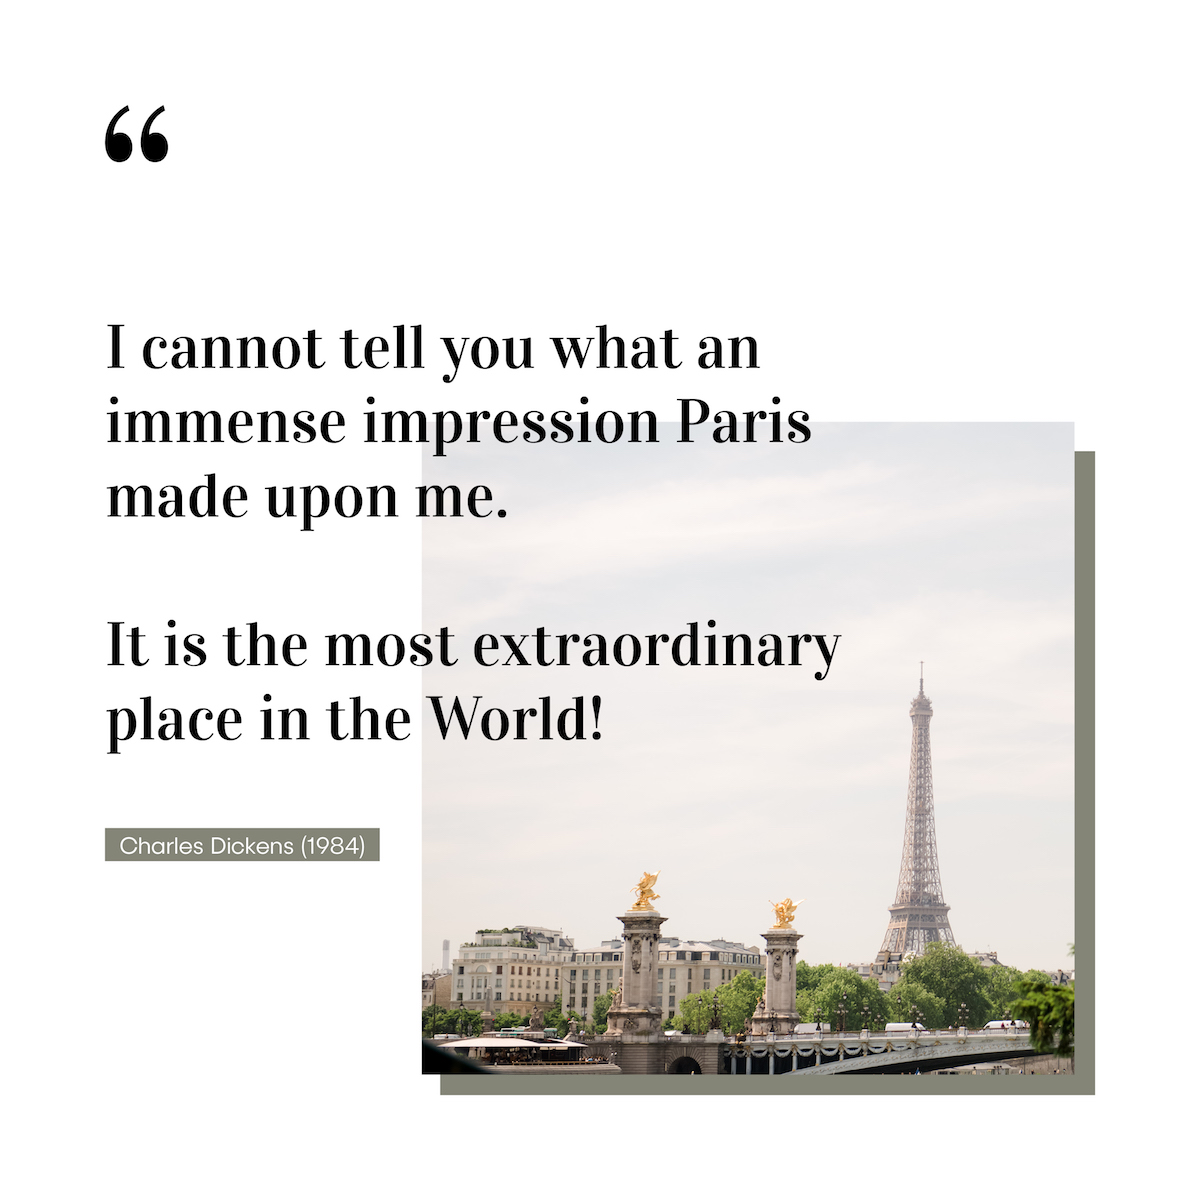 Postcards from Paris Online Course Painting Design Watercolors UX/UI Learning System Training Dreama Tolle Perry Identity Division Lis Lisande Dingjan Brisbane Netherlands UK London Experience Design Studio Custom Hand Lettering French Type 1920s